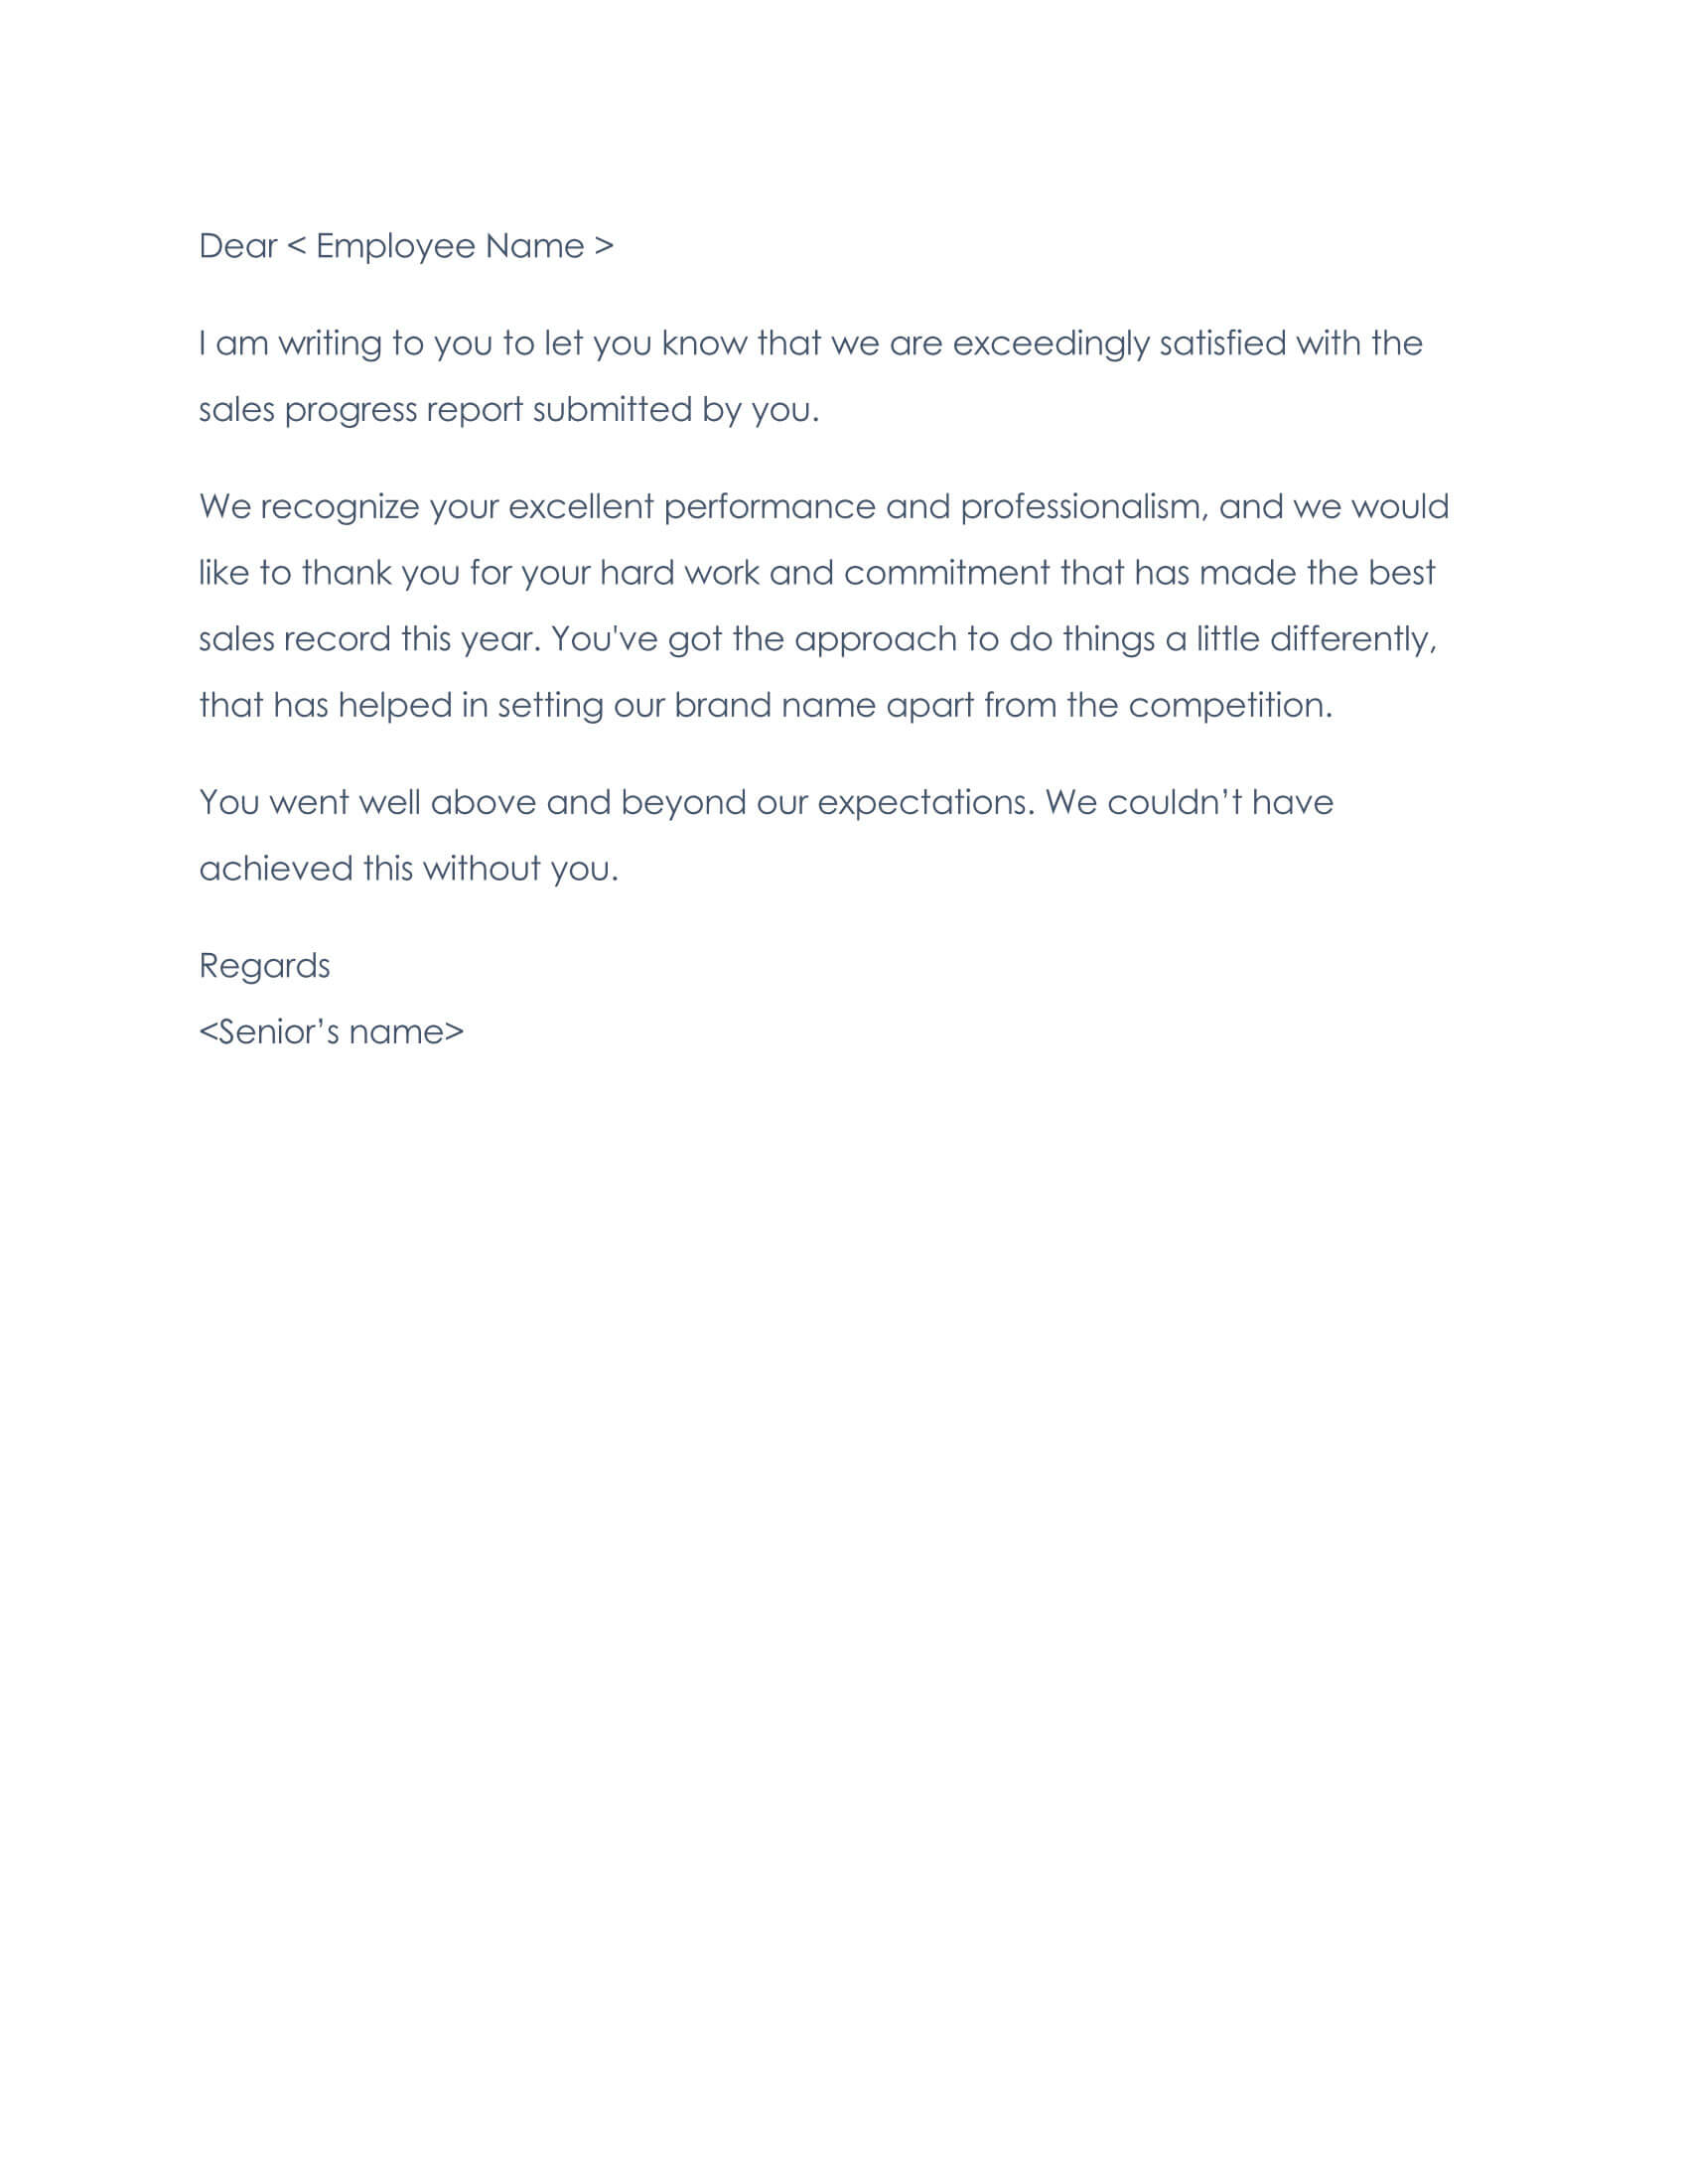 Employee Thank You Letter Sample 05